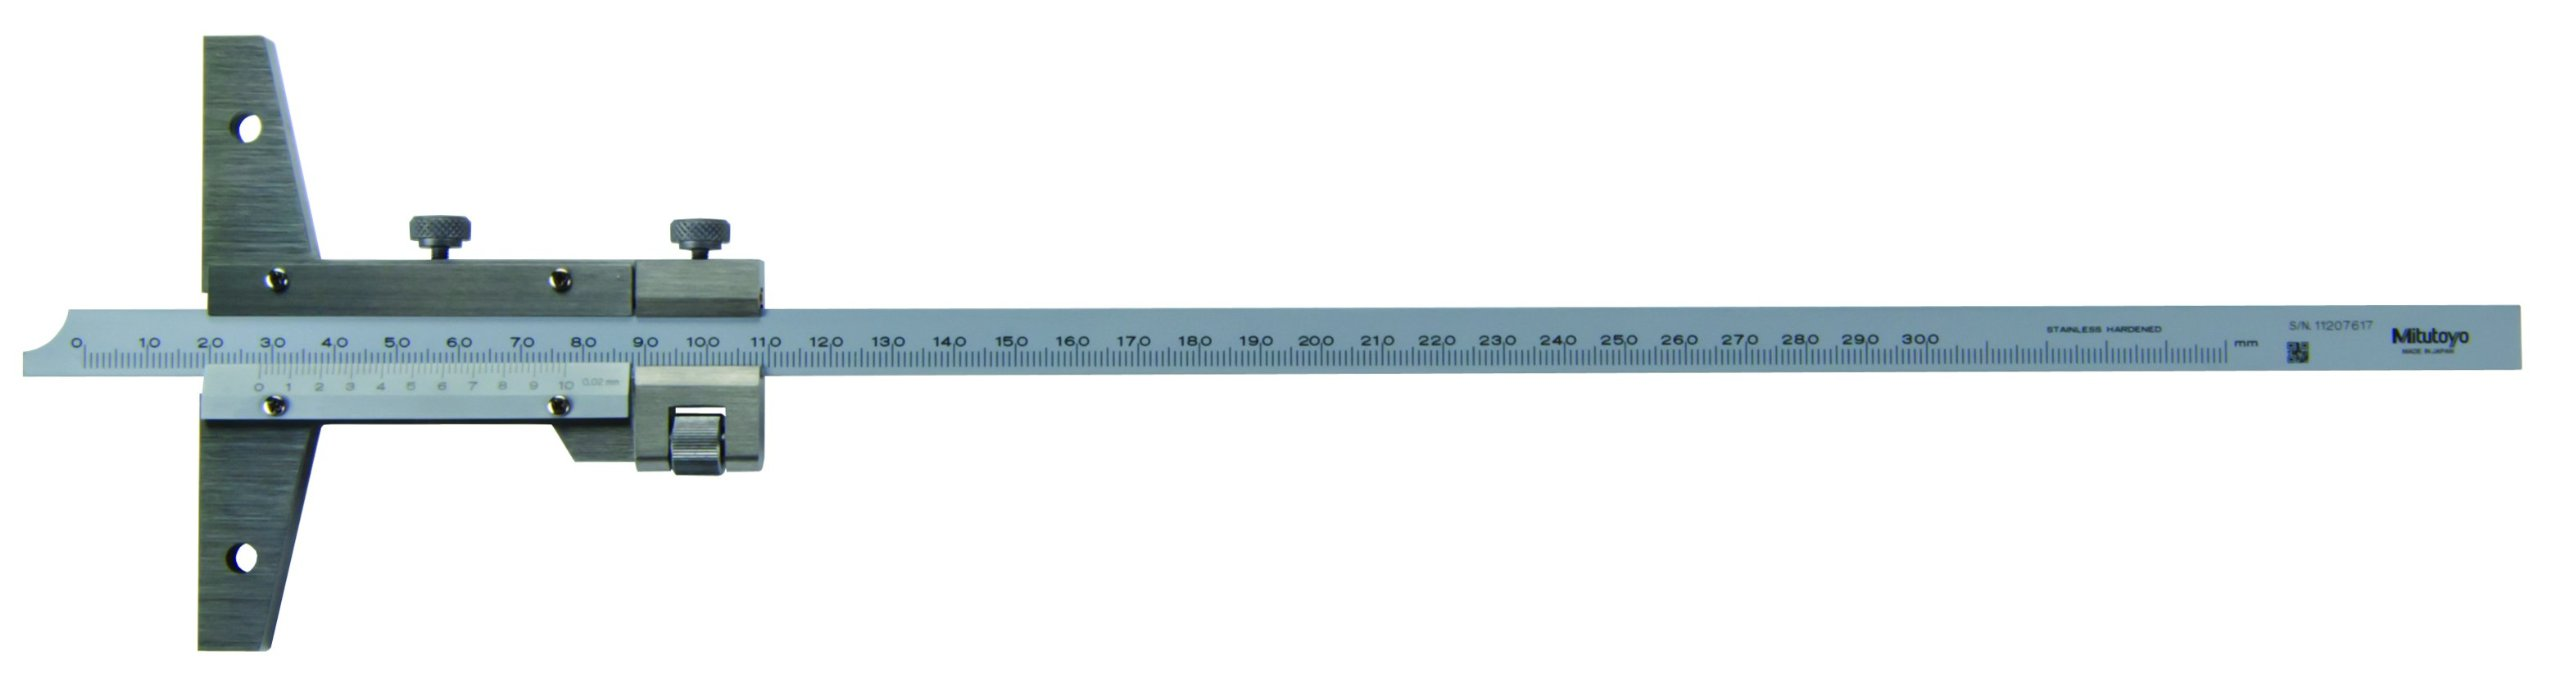 Mitutoyo 527-103 Vernier Depth Gauge, Caliper Type, 0-300mm Range, 0.02mm Graduation, +/-0.04mm Accuracy, With Fine Adjustment Feature